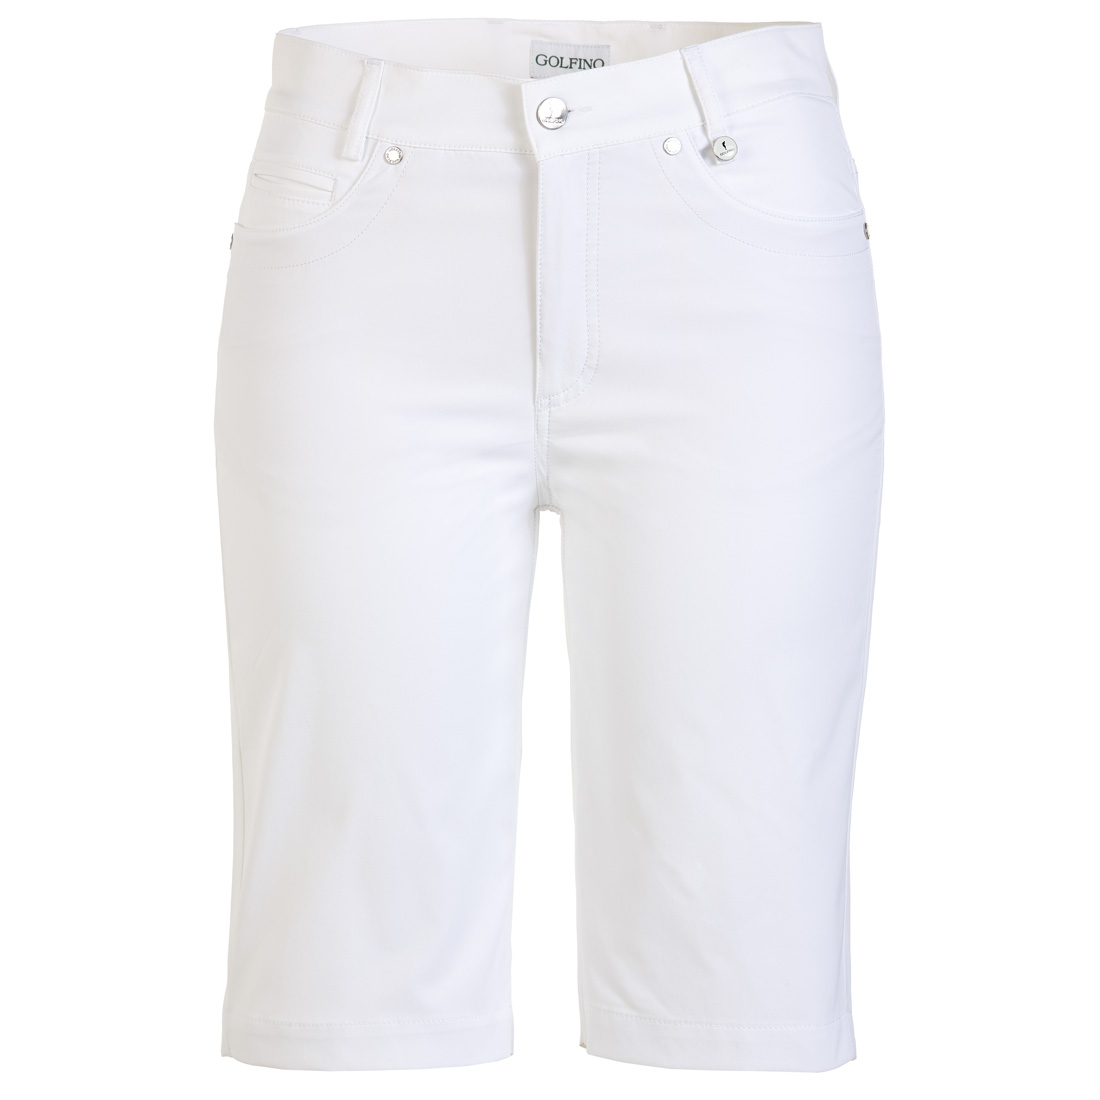 Golfbermuda 5-Pocket aus Baumwoll Stretch mit UV-Schutz in Slim Fit